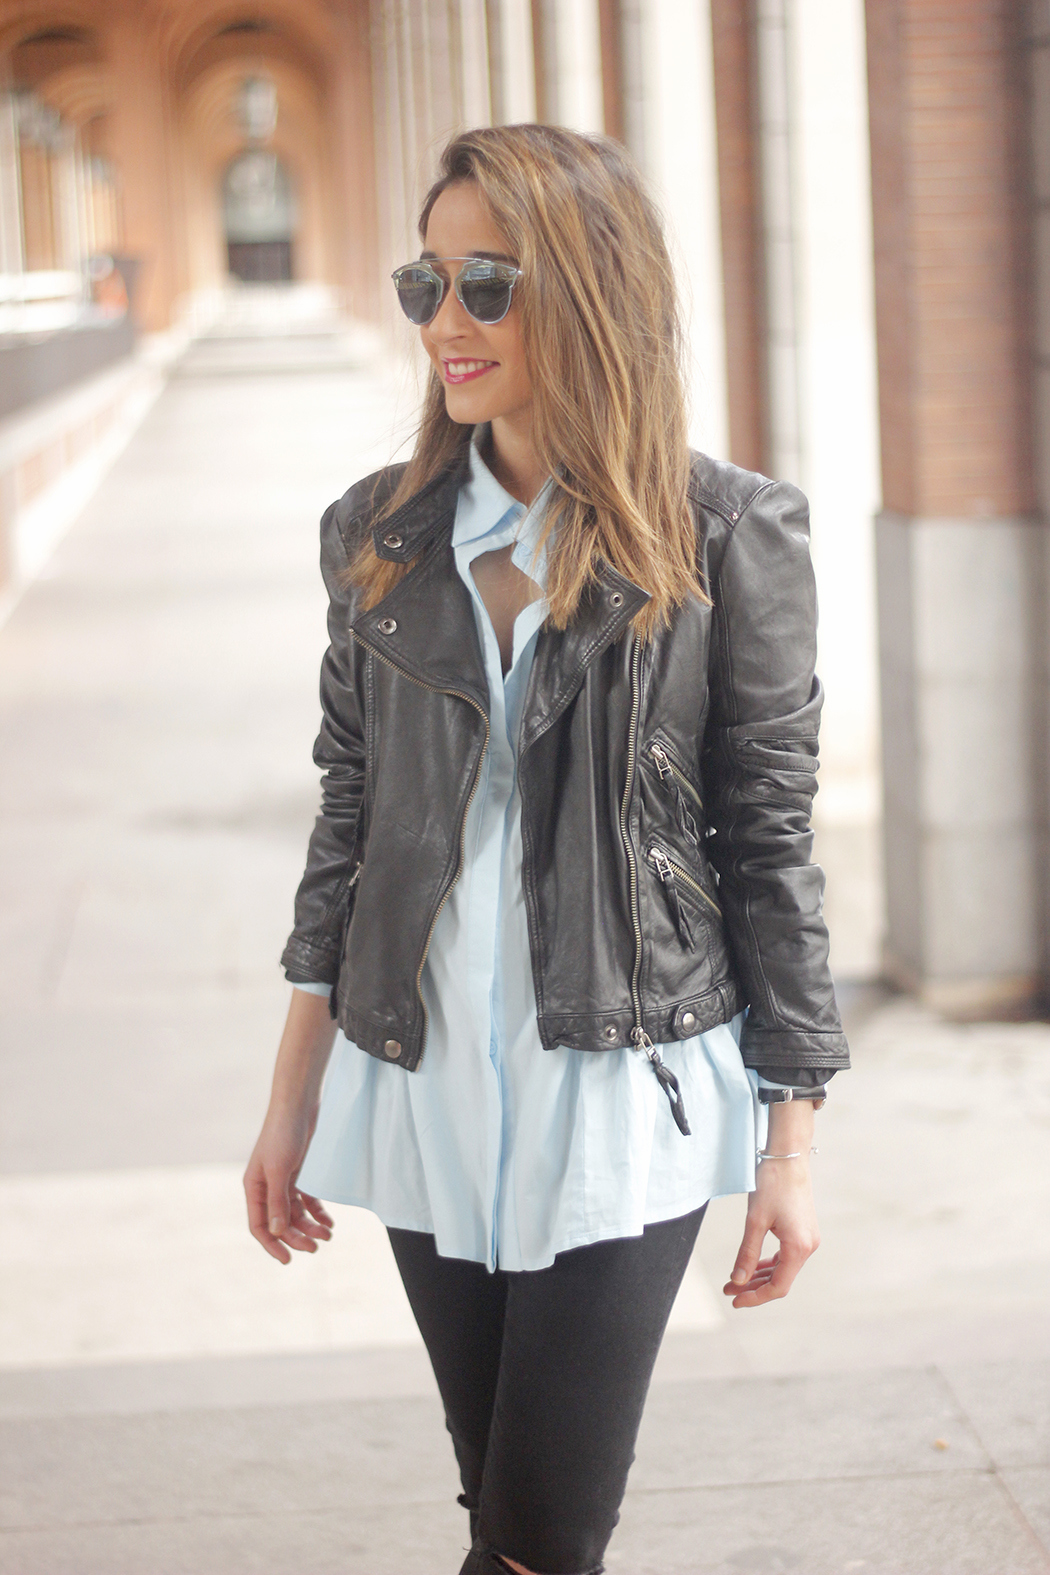 black leather biker black ripped jeans blue shirt outfit streetstyle12